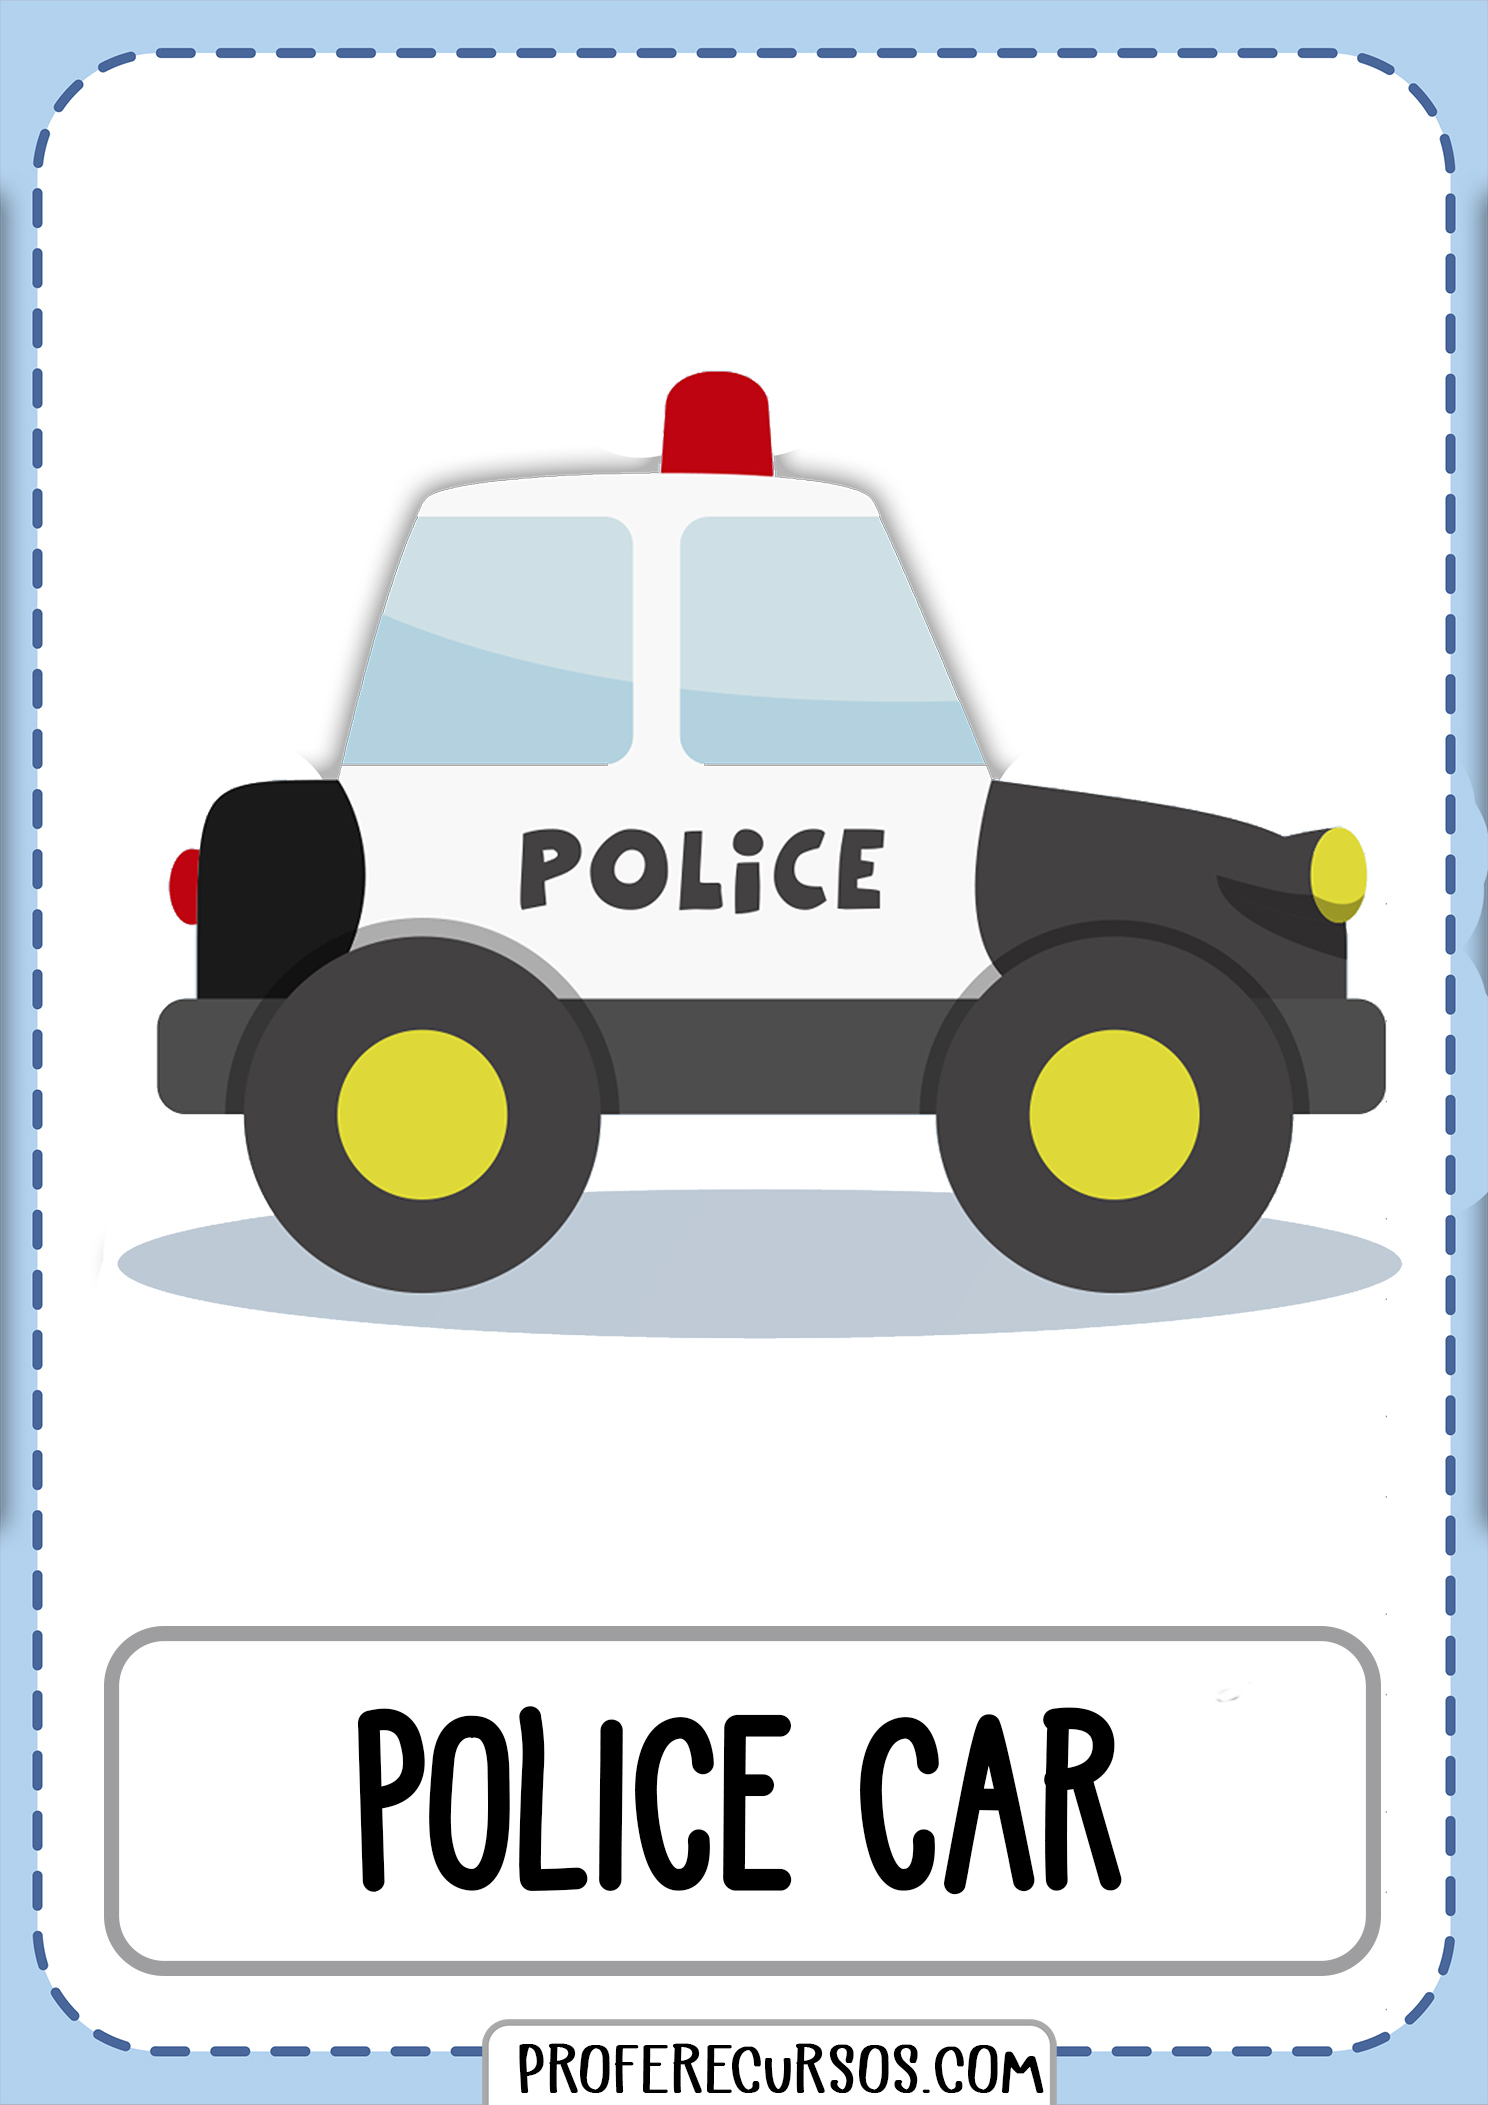 Means-of-transport-vocabulary-police-car